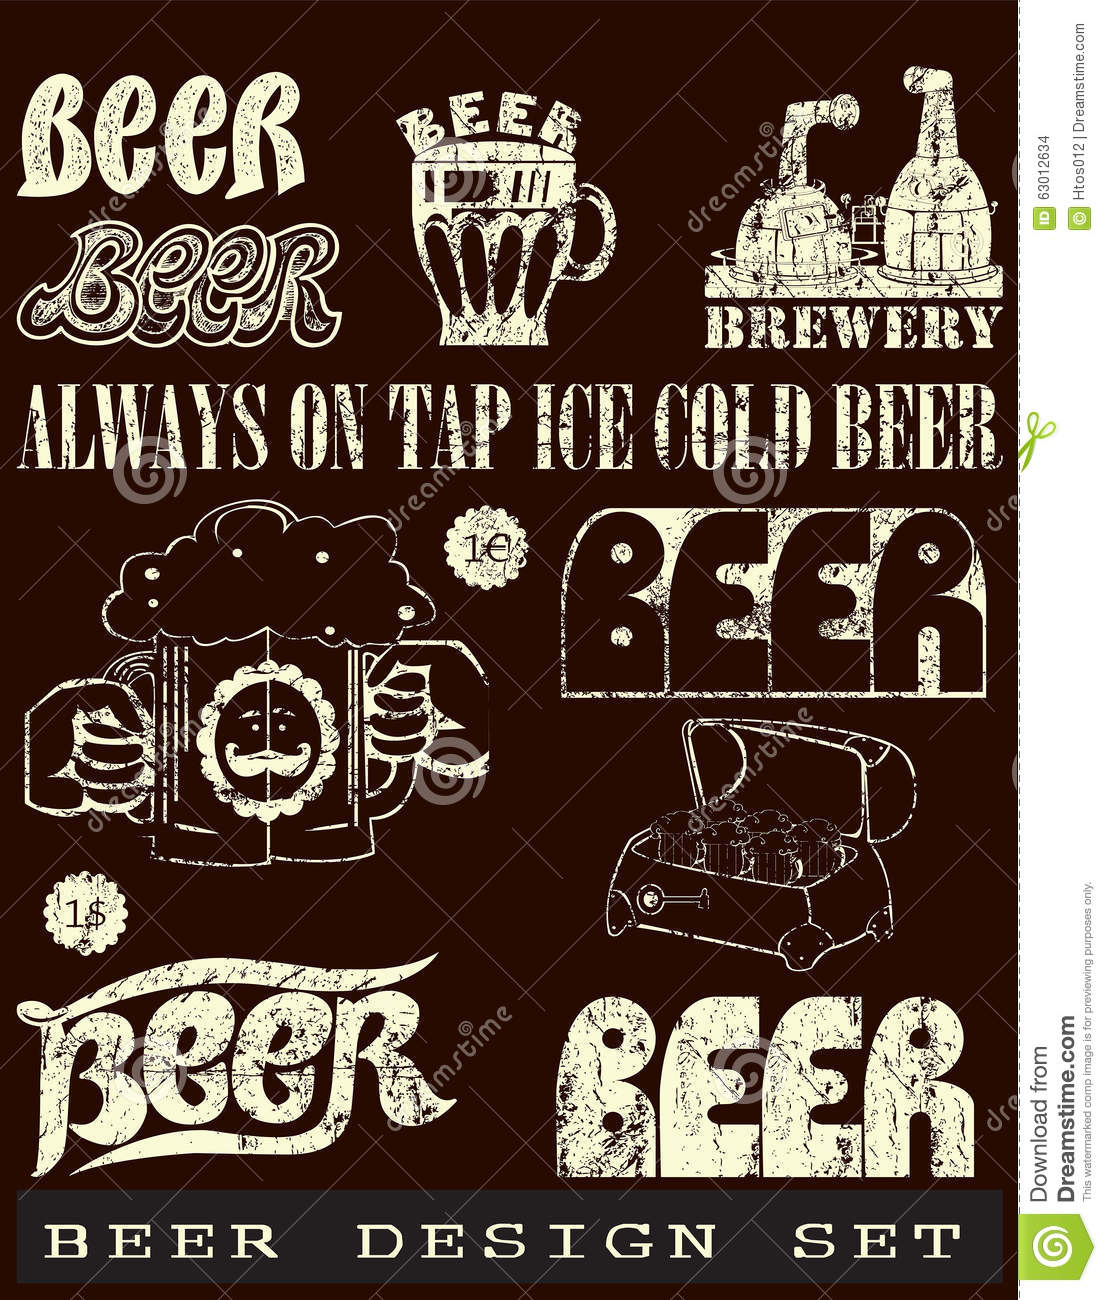 Beer Text Box Wiring Diagrams 5x Copper Clad Laminate Circuit Board Plate Pcb Fr2 Panel Size 12x18cm Design Set Stock Illustration Of Lettering 63012634 Rh Dreamstime Com Drink More Font